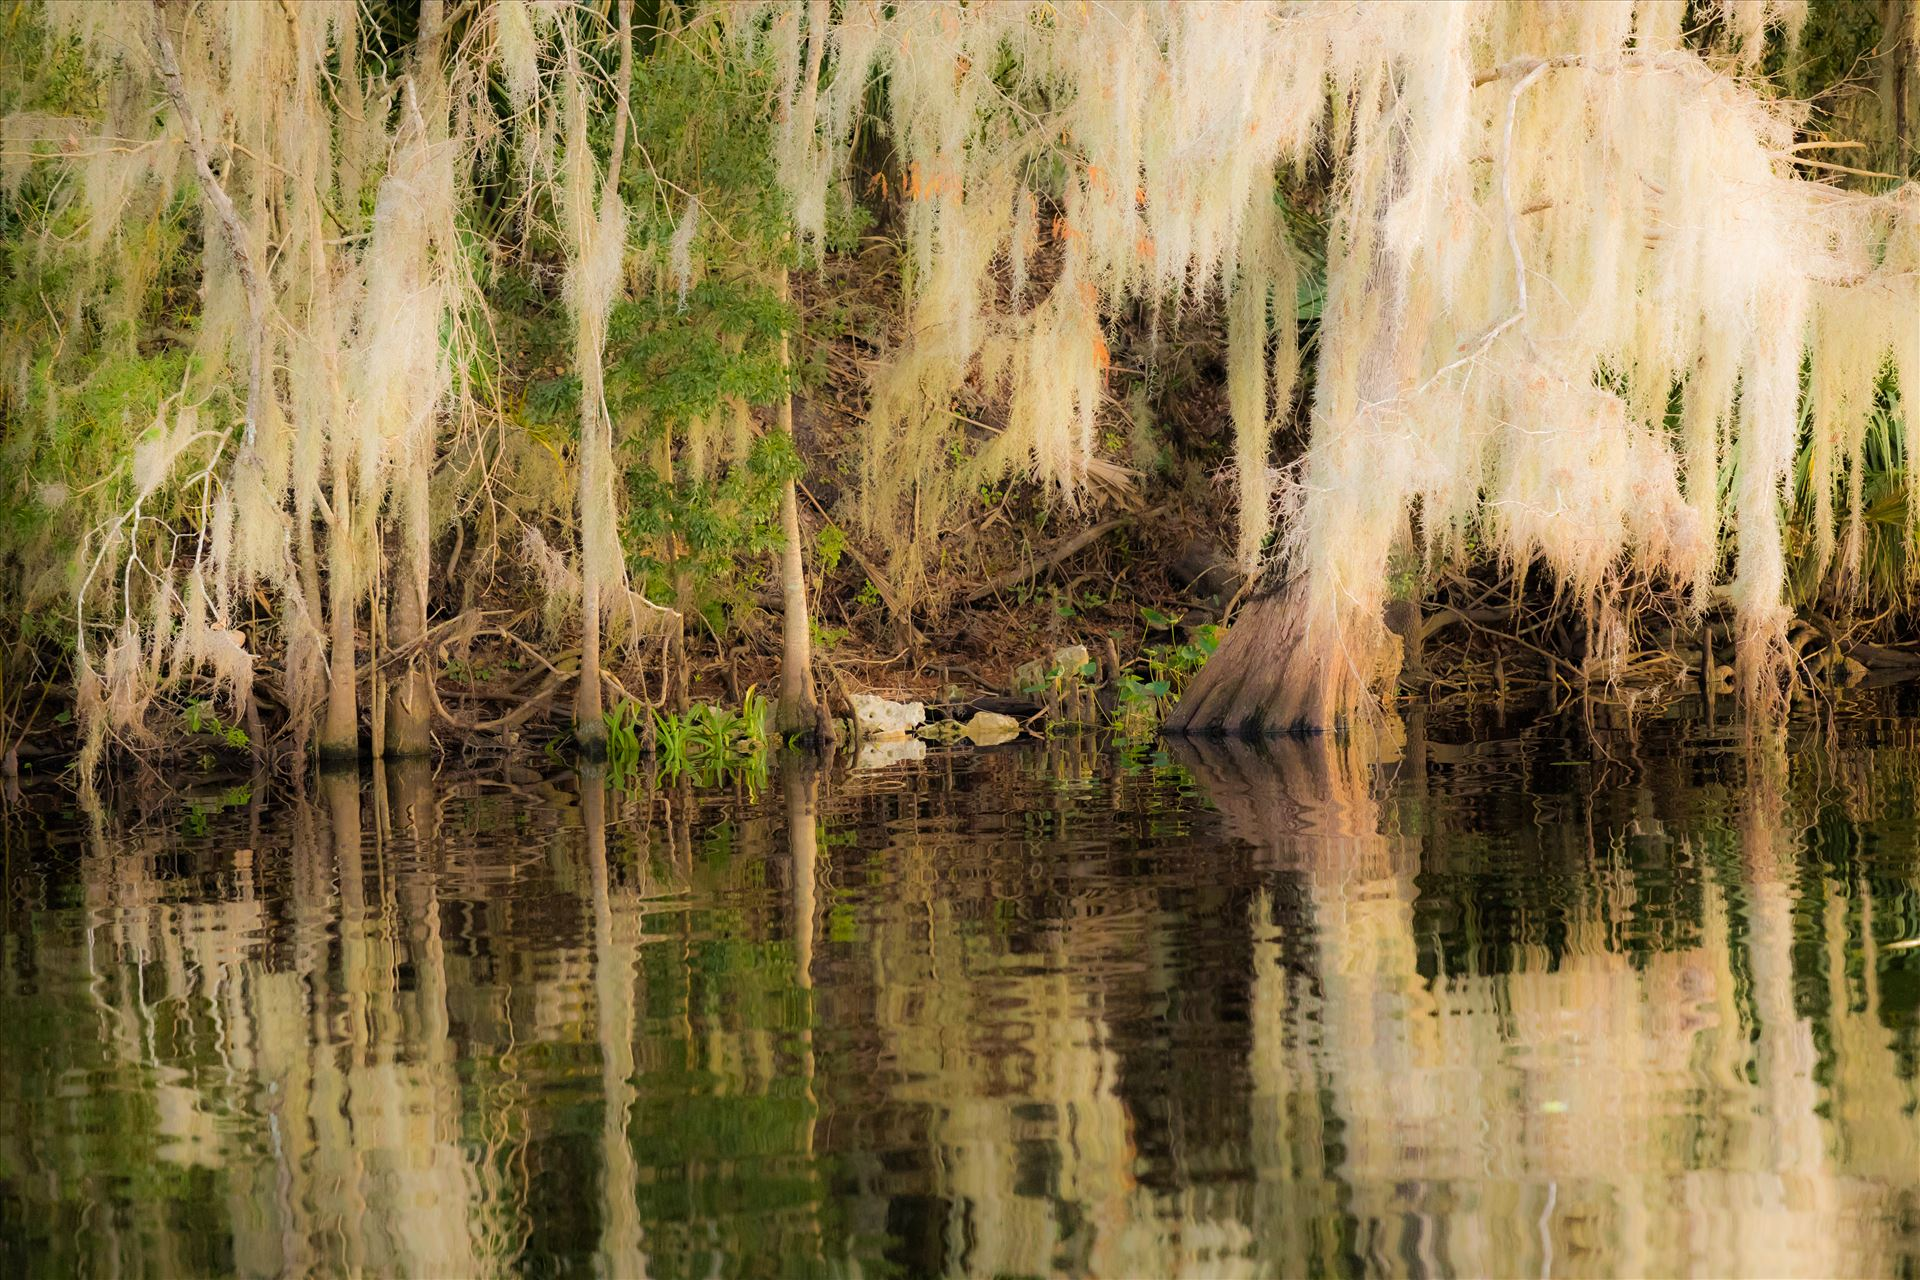 Reflections-2.jpg Water reflection in swamp of the St John's River, Florida by Cat Cornish Photography